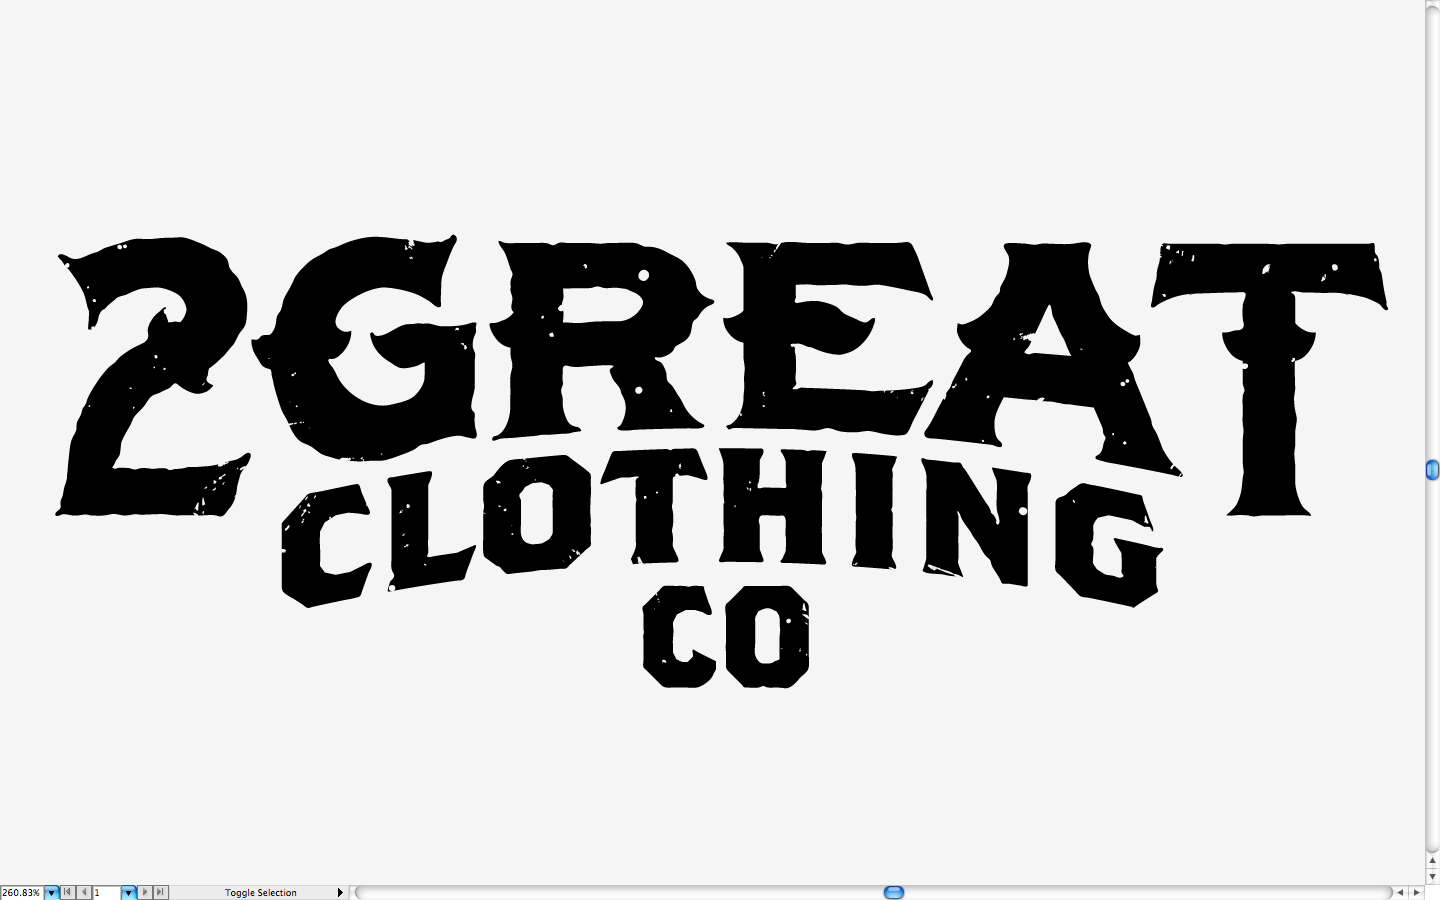 2Great Clothing Co. - image 26 - student project